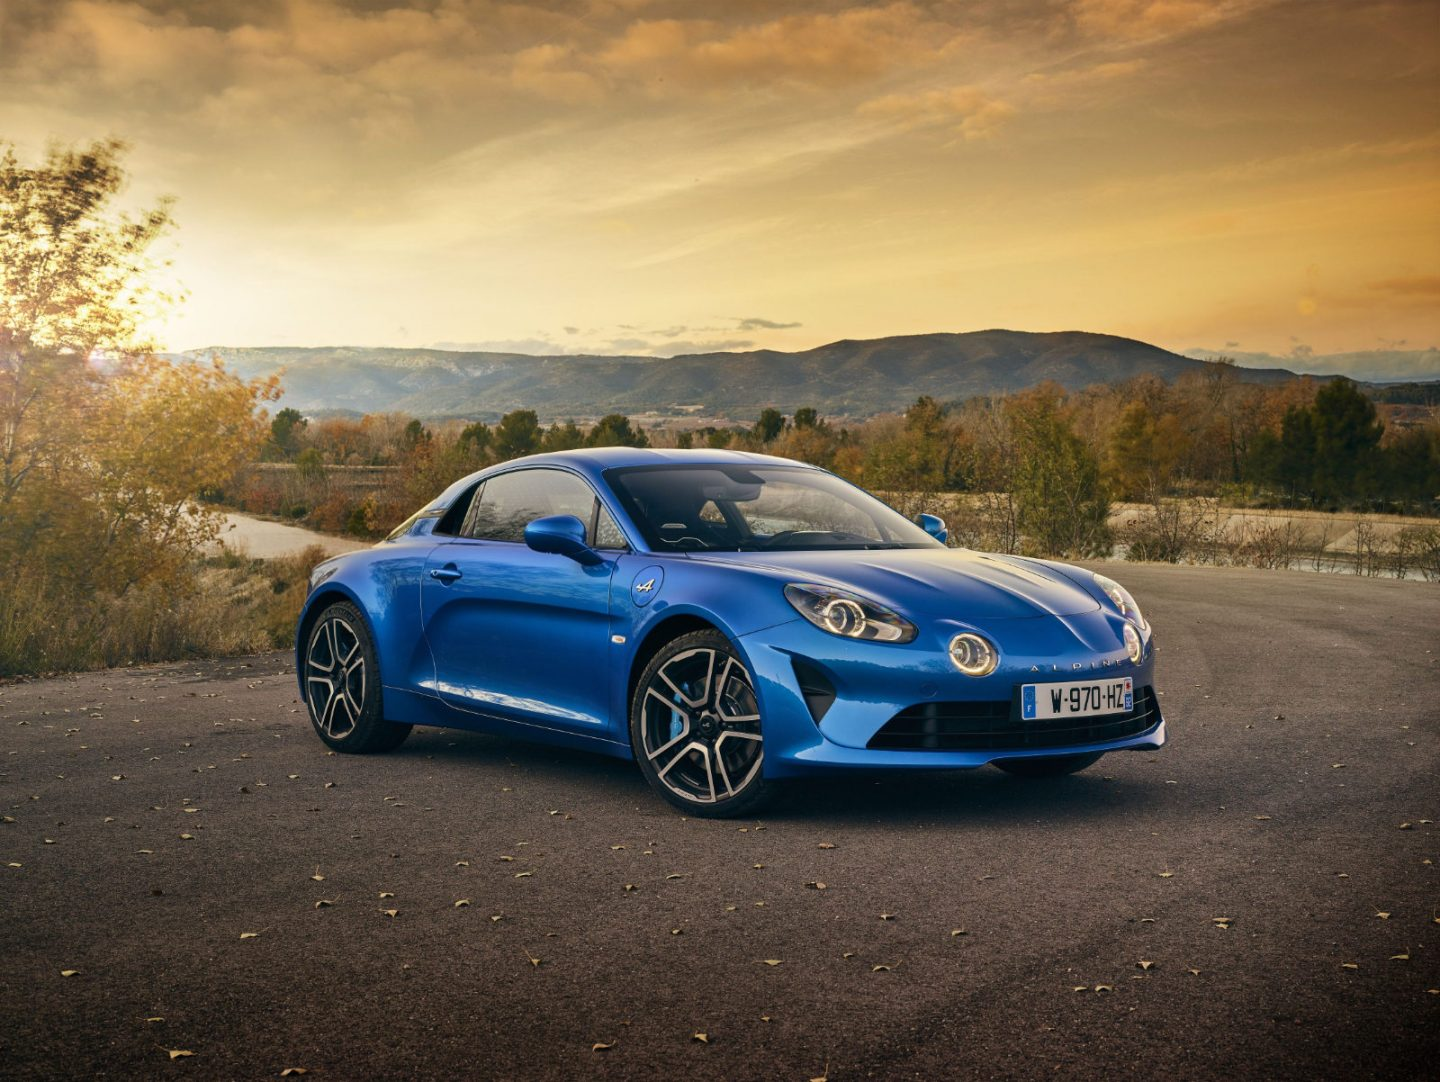 Alpine is back, with the A110 Première Edition—deliveries begin March 2018